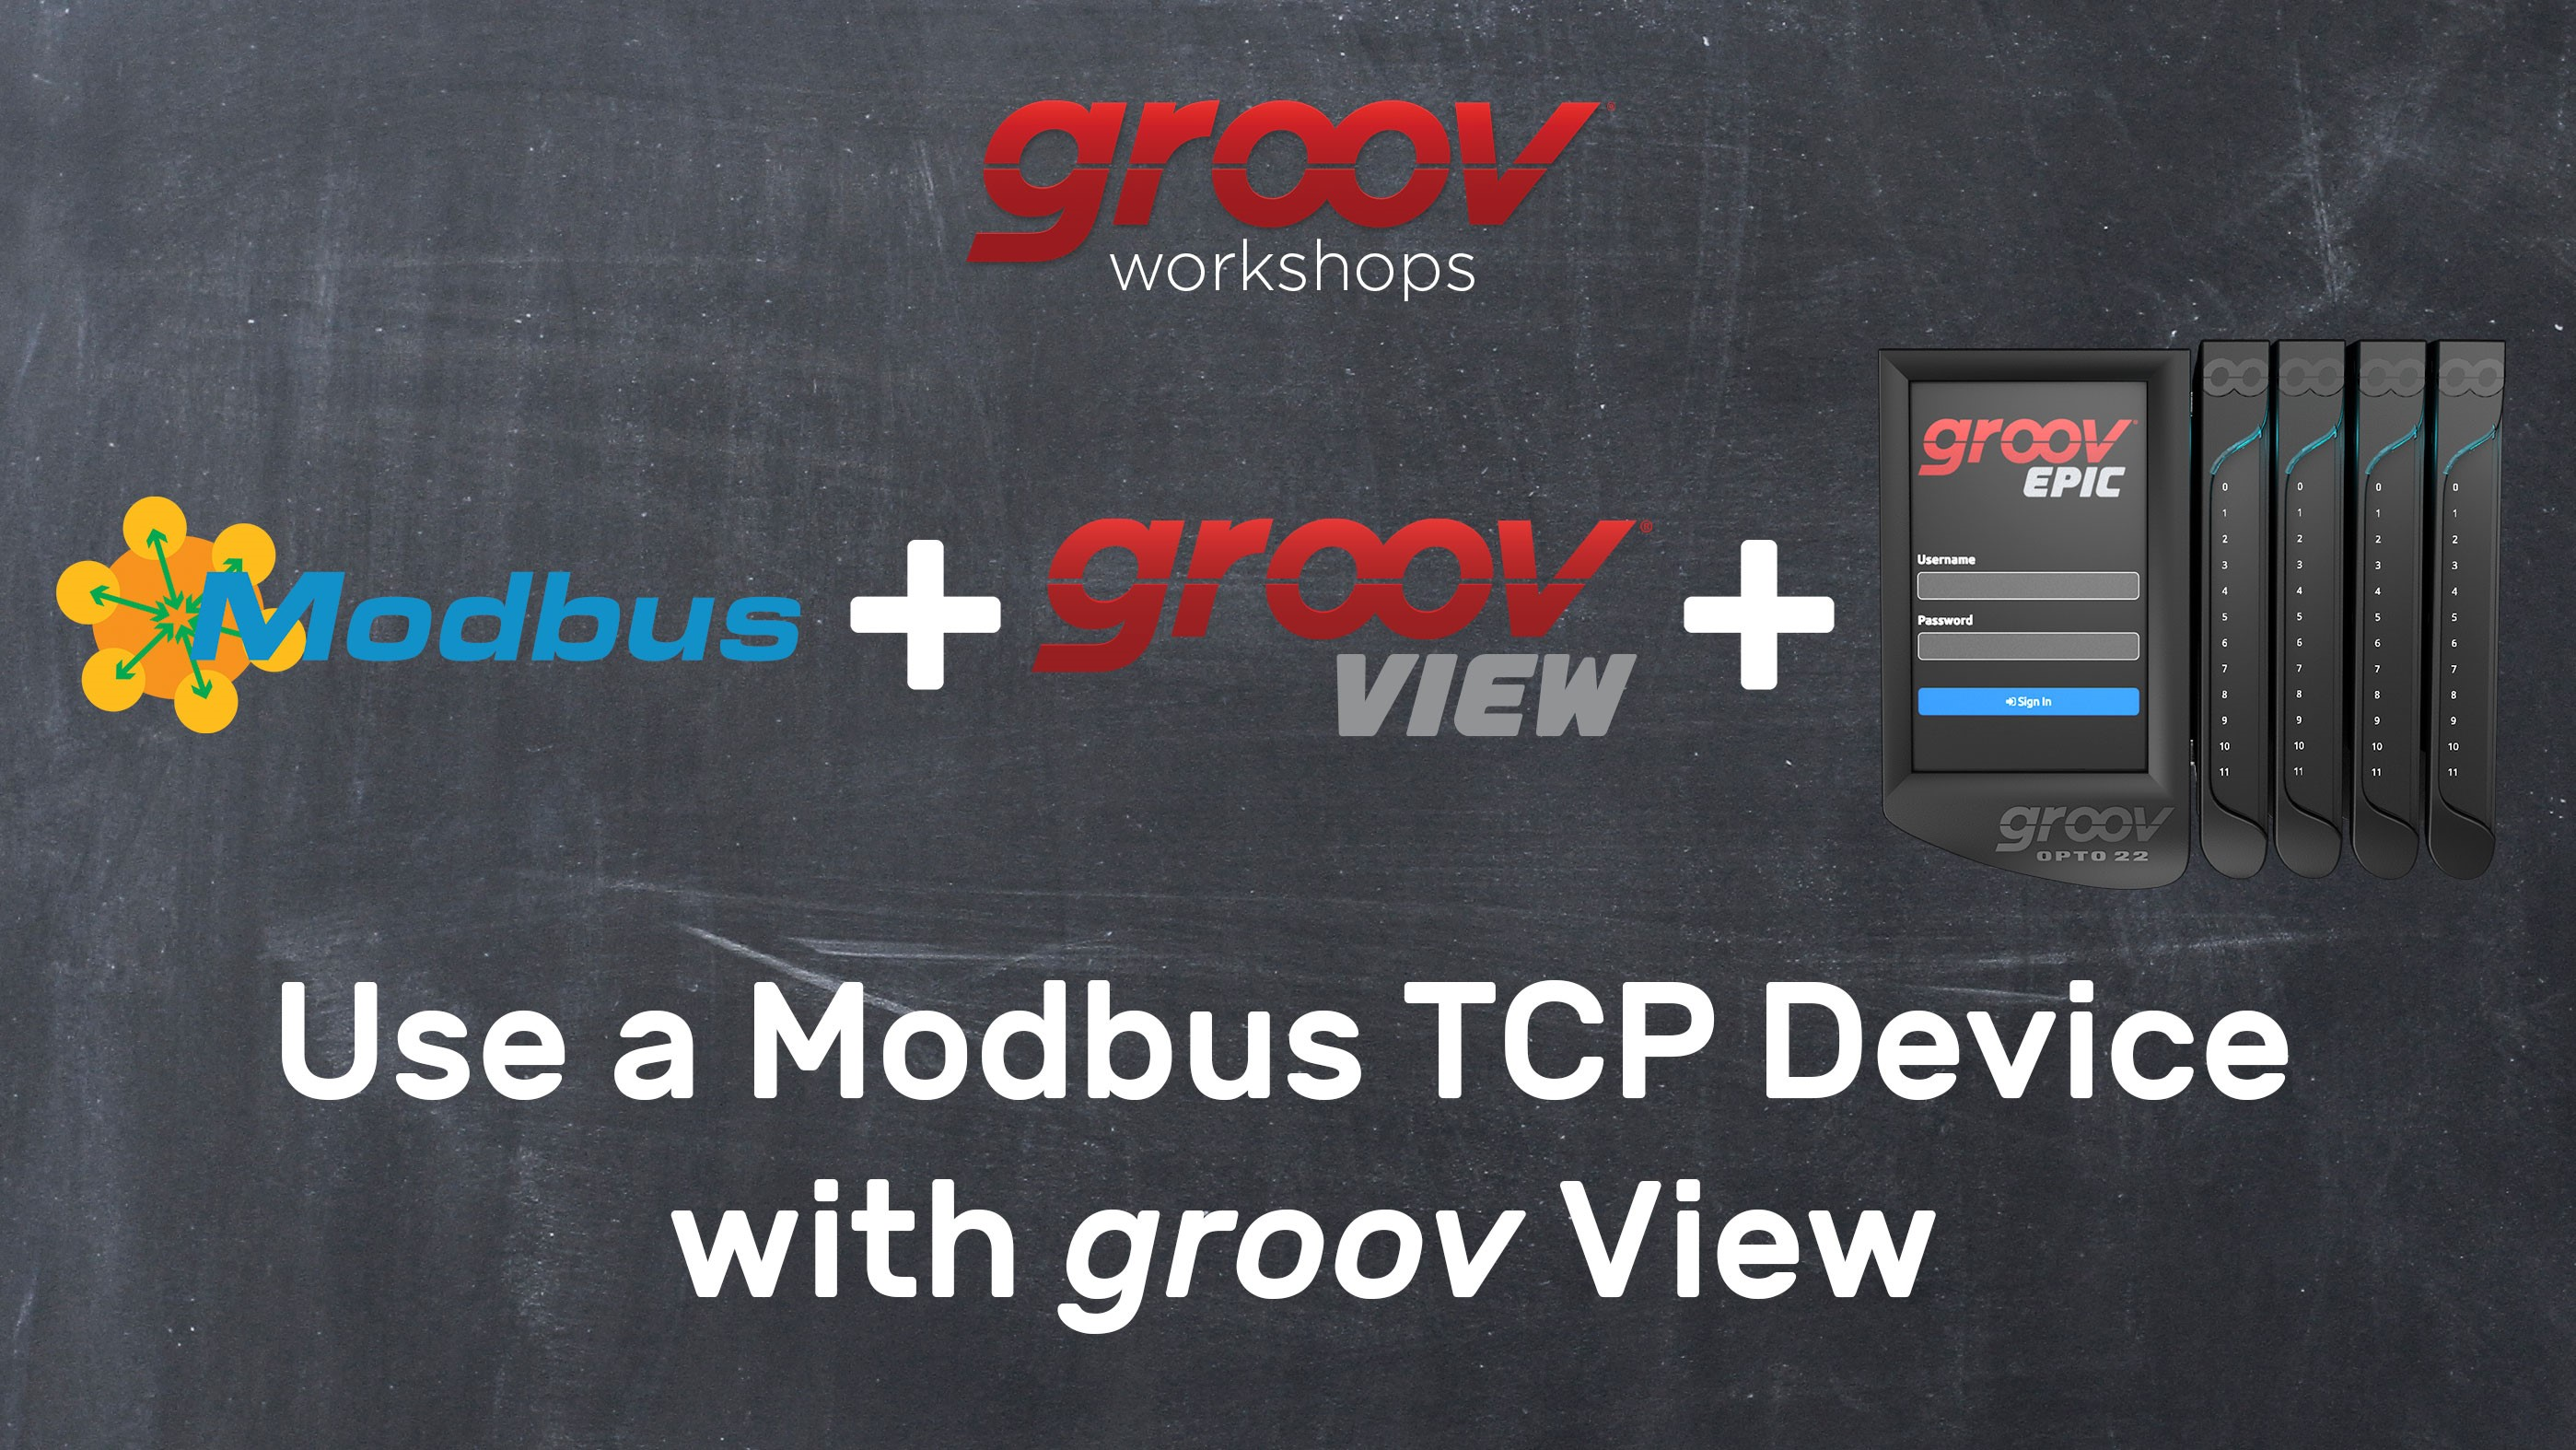 Use a Modbus TCP device with groov View